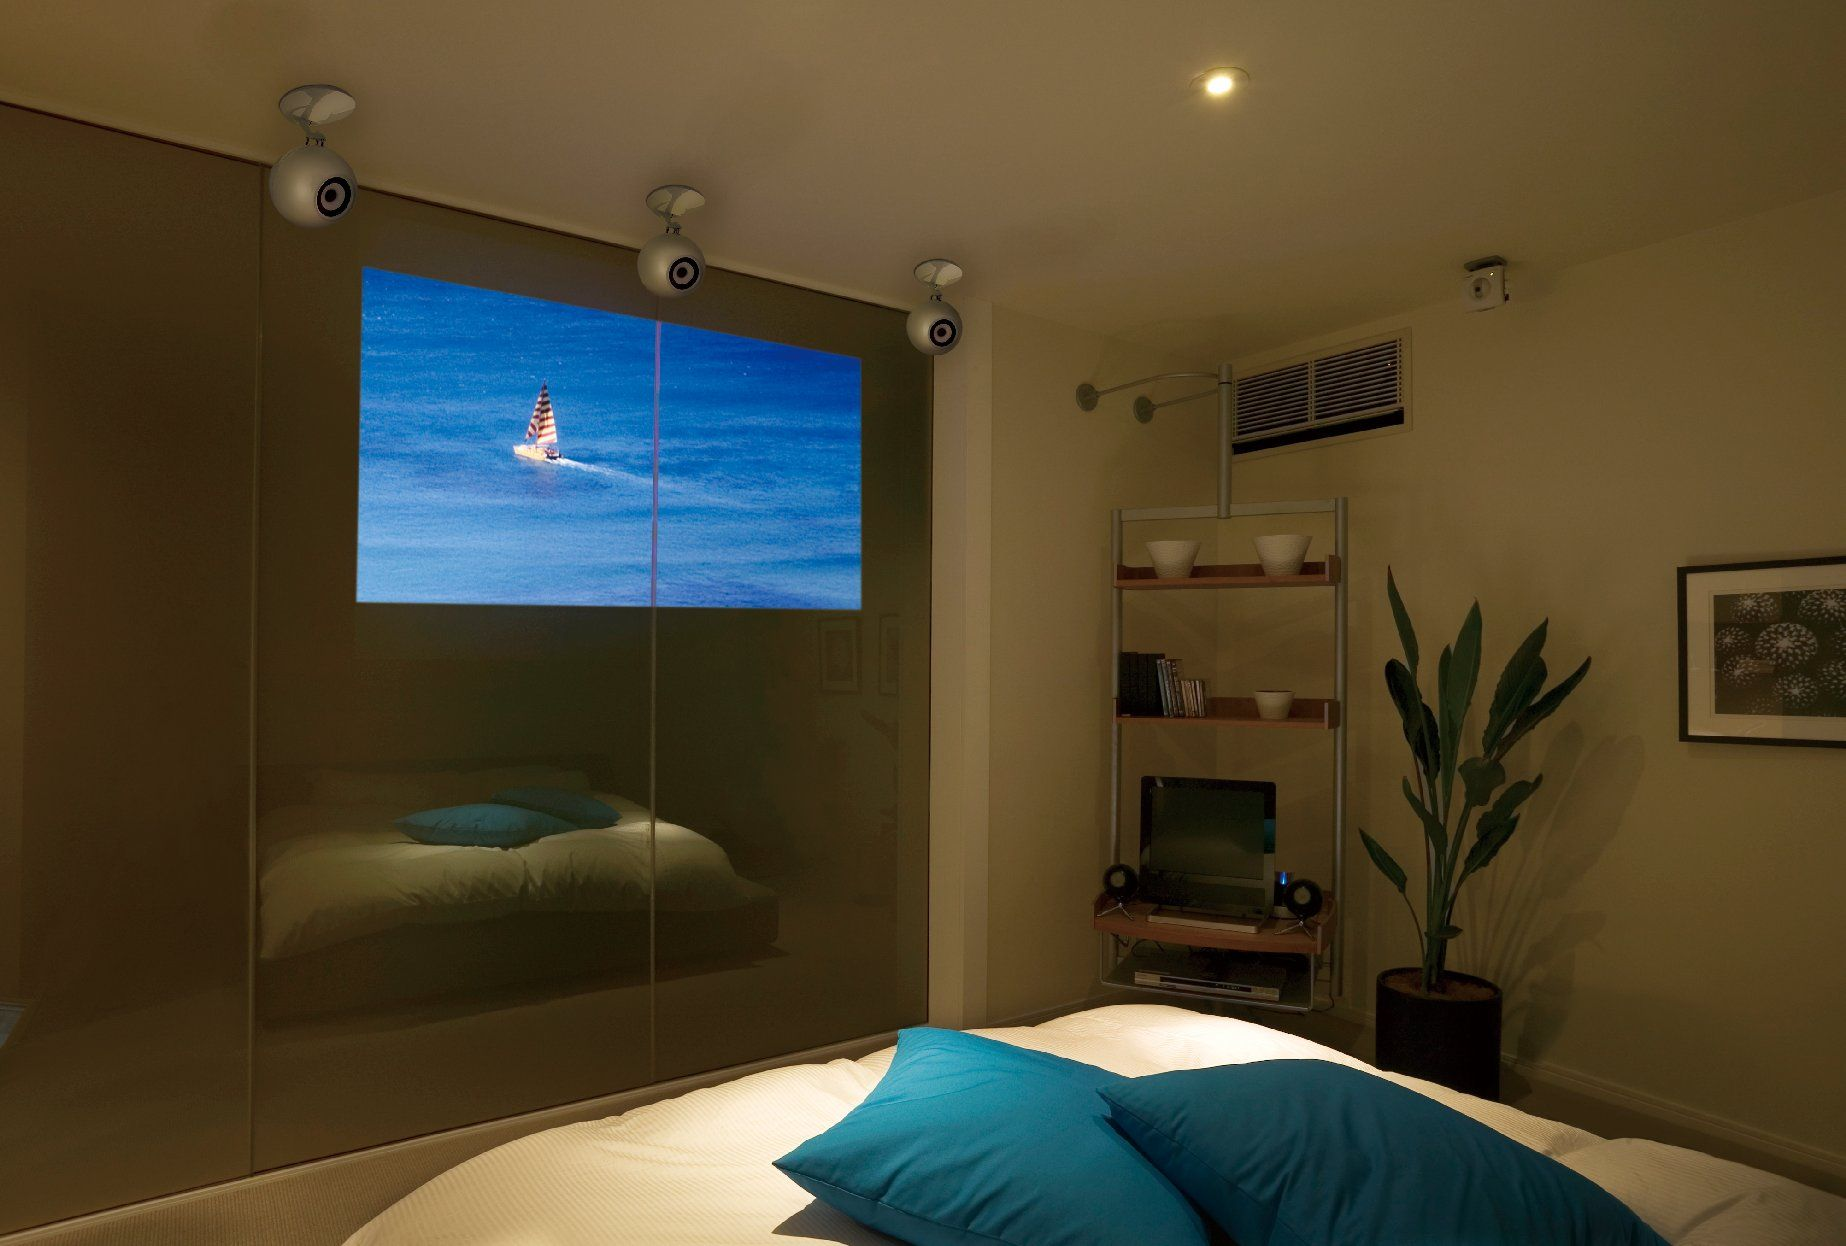 Cool Speakers For Bedroom Eclipse Td 5 Series Speakers And Mirrored Tv Make For Cool Bedroom